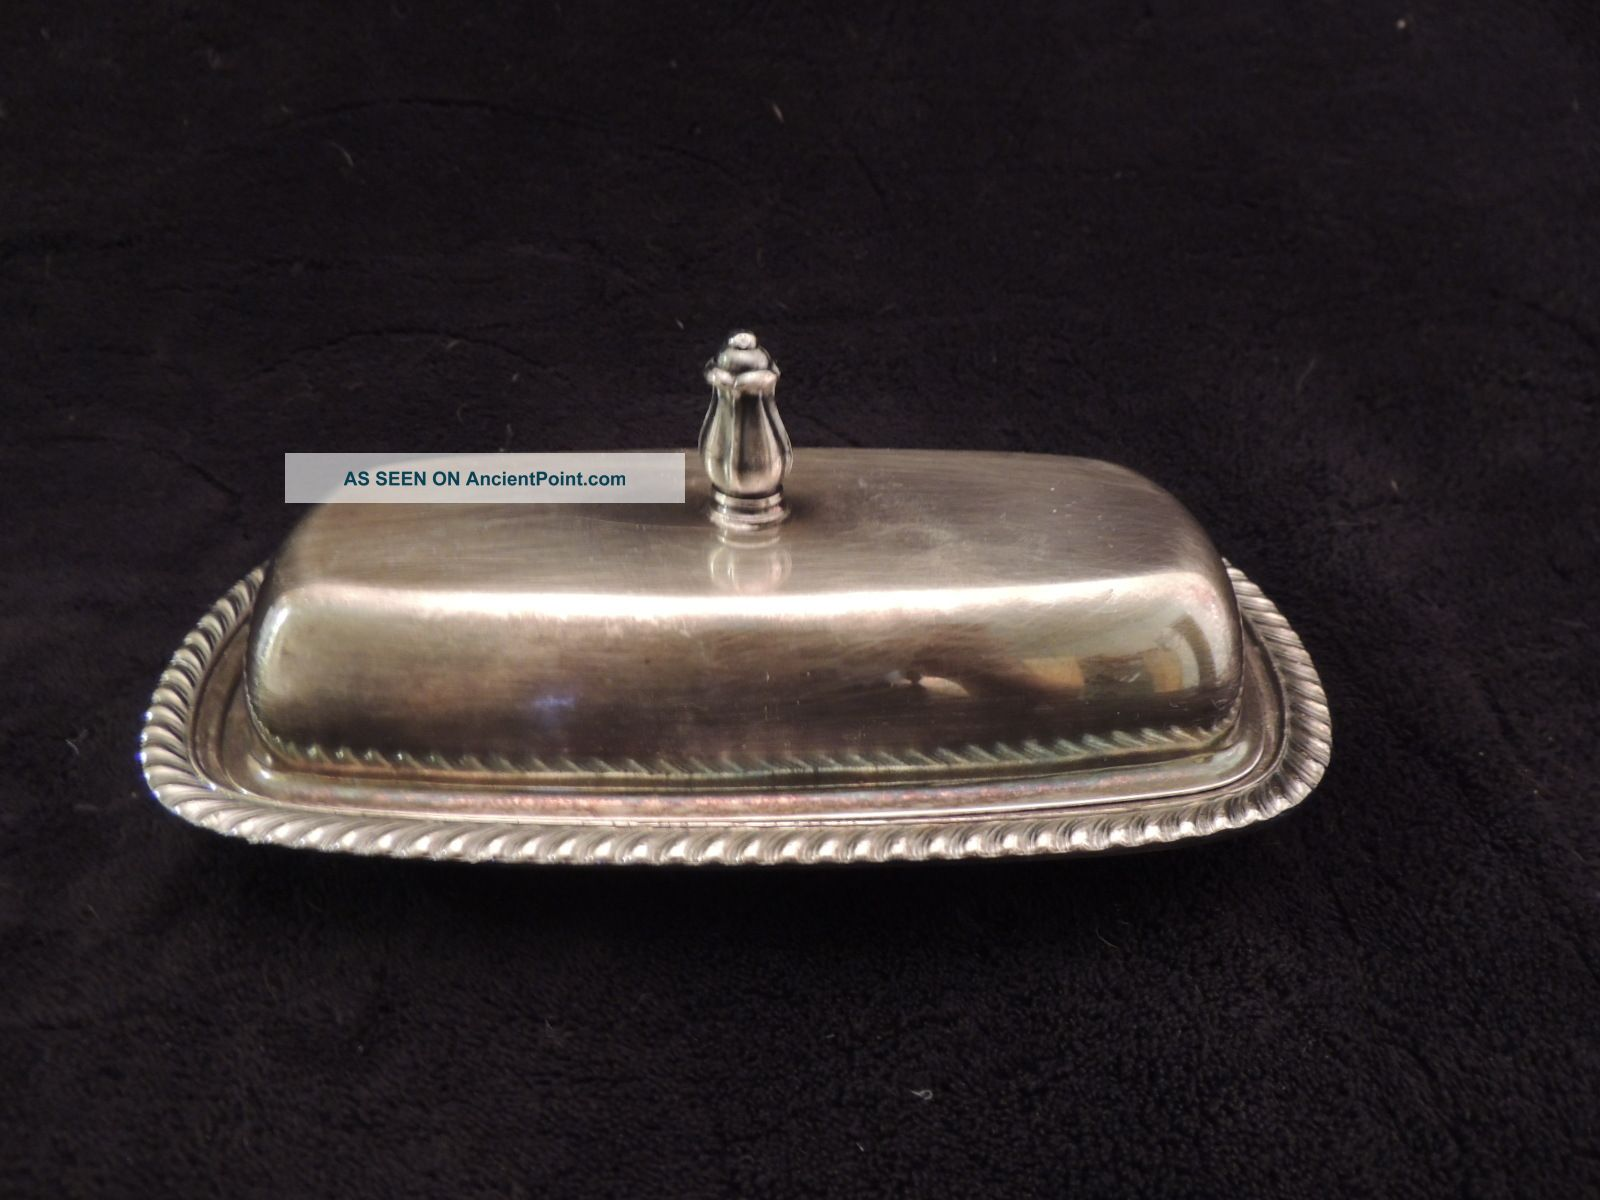 Vintage Fiesta By Oneida Ltd Silver Plate Butter Dish Set Butter Dishes photo